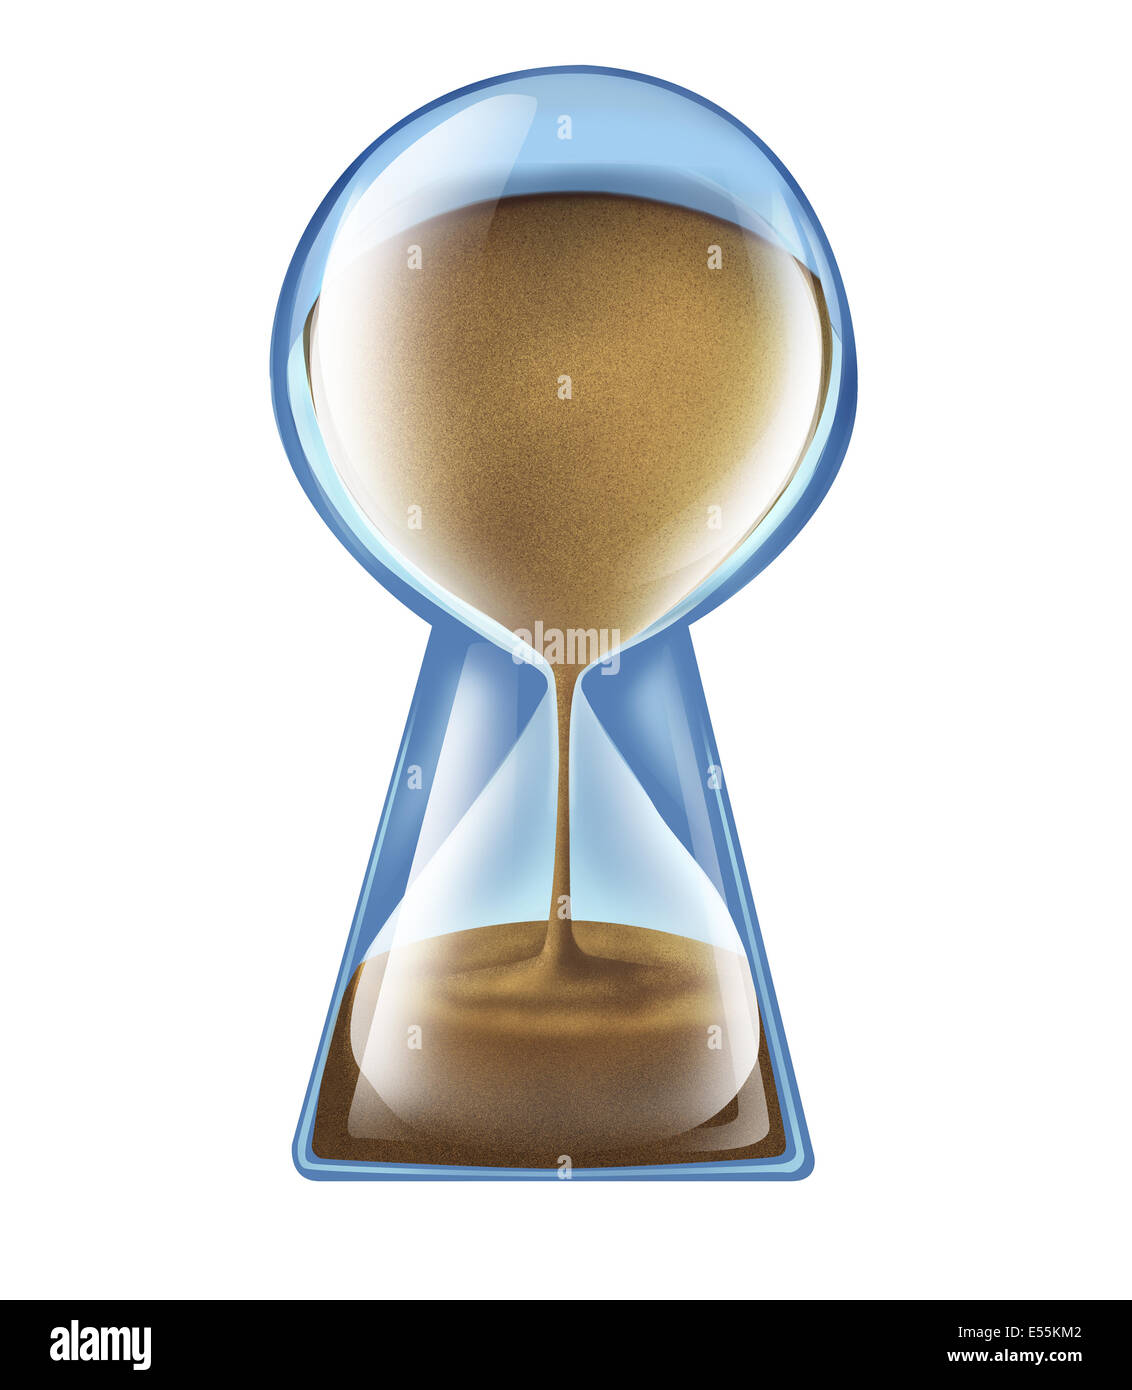 Longevity key health concept as an hourglass shaped as a keyhole as a symbol of living longer and new medical technology - Stock Image